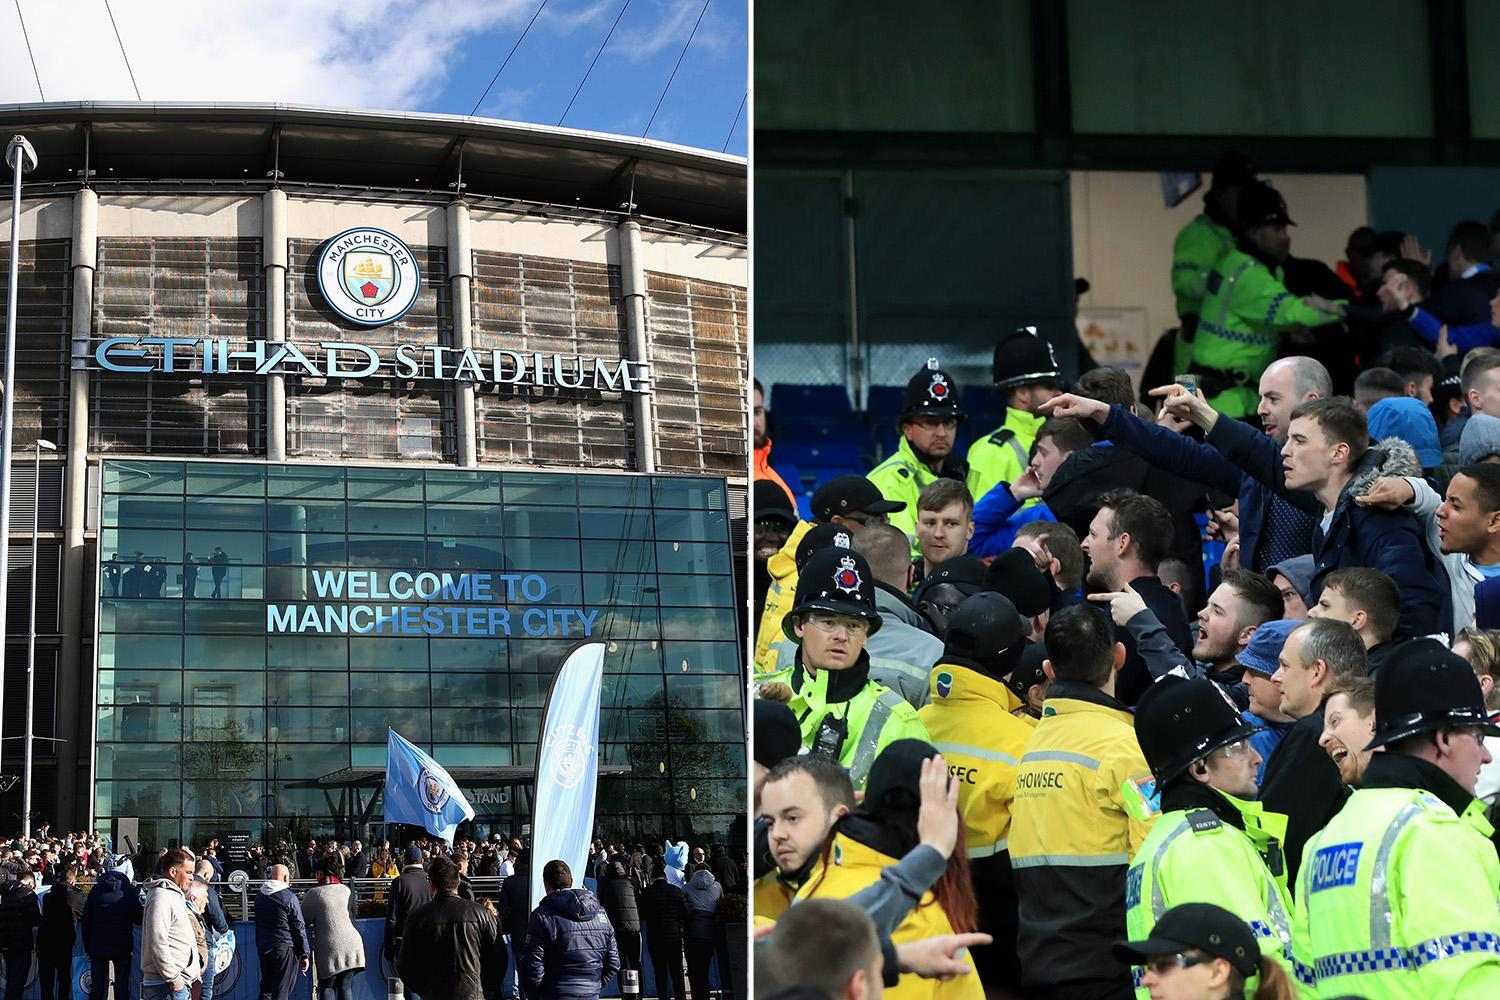 Manchester United to make formal complaint to Manchester City about cut in tickets for Etihad derby clash